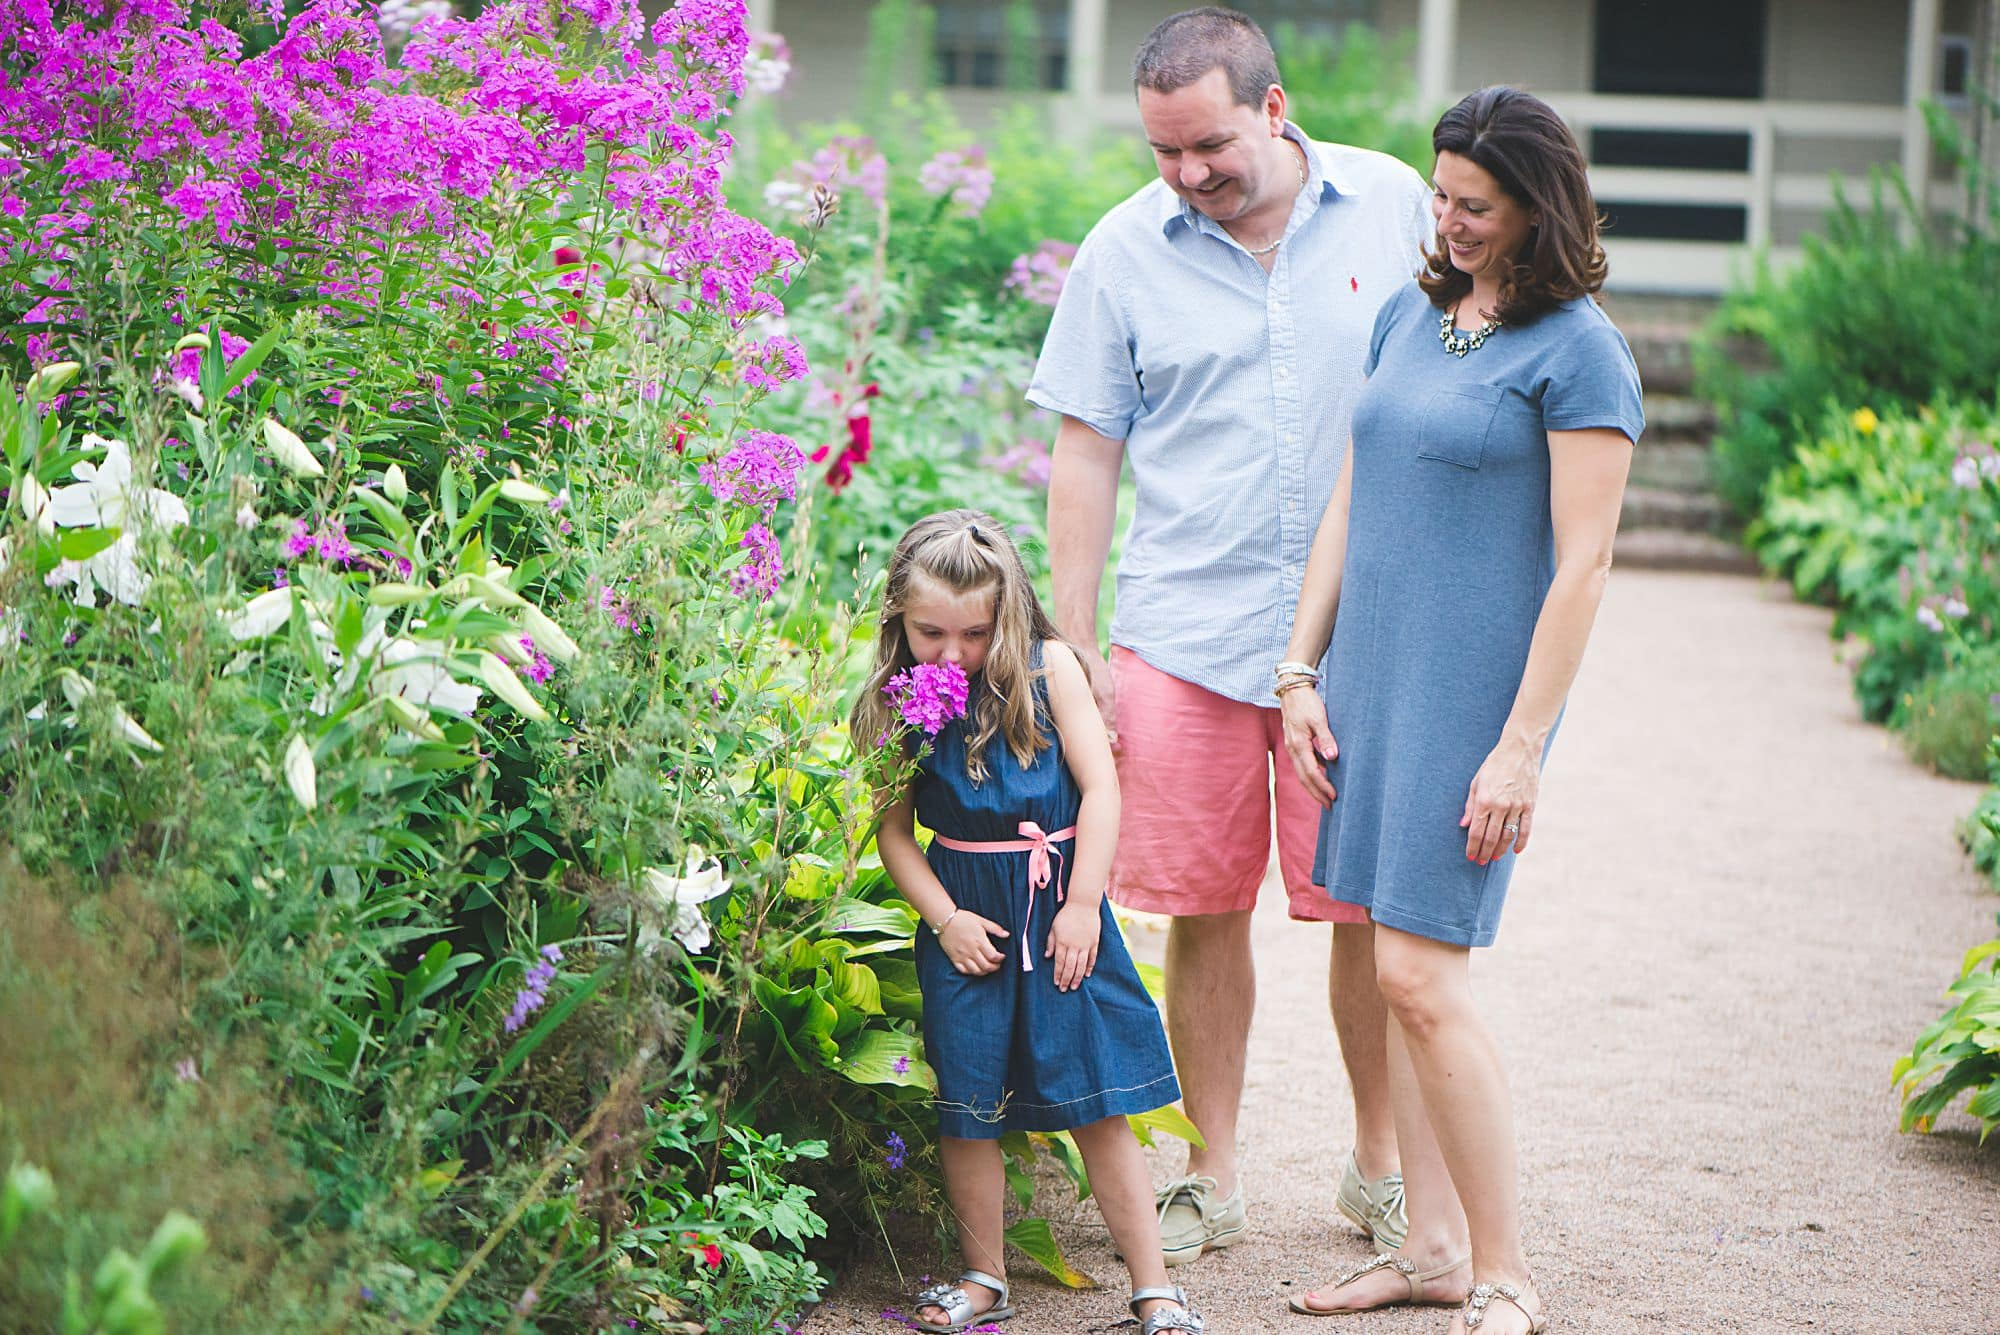 Casual family picture in a garden with pink flowers in Westherfield